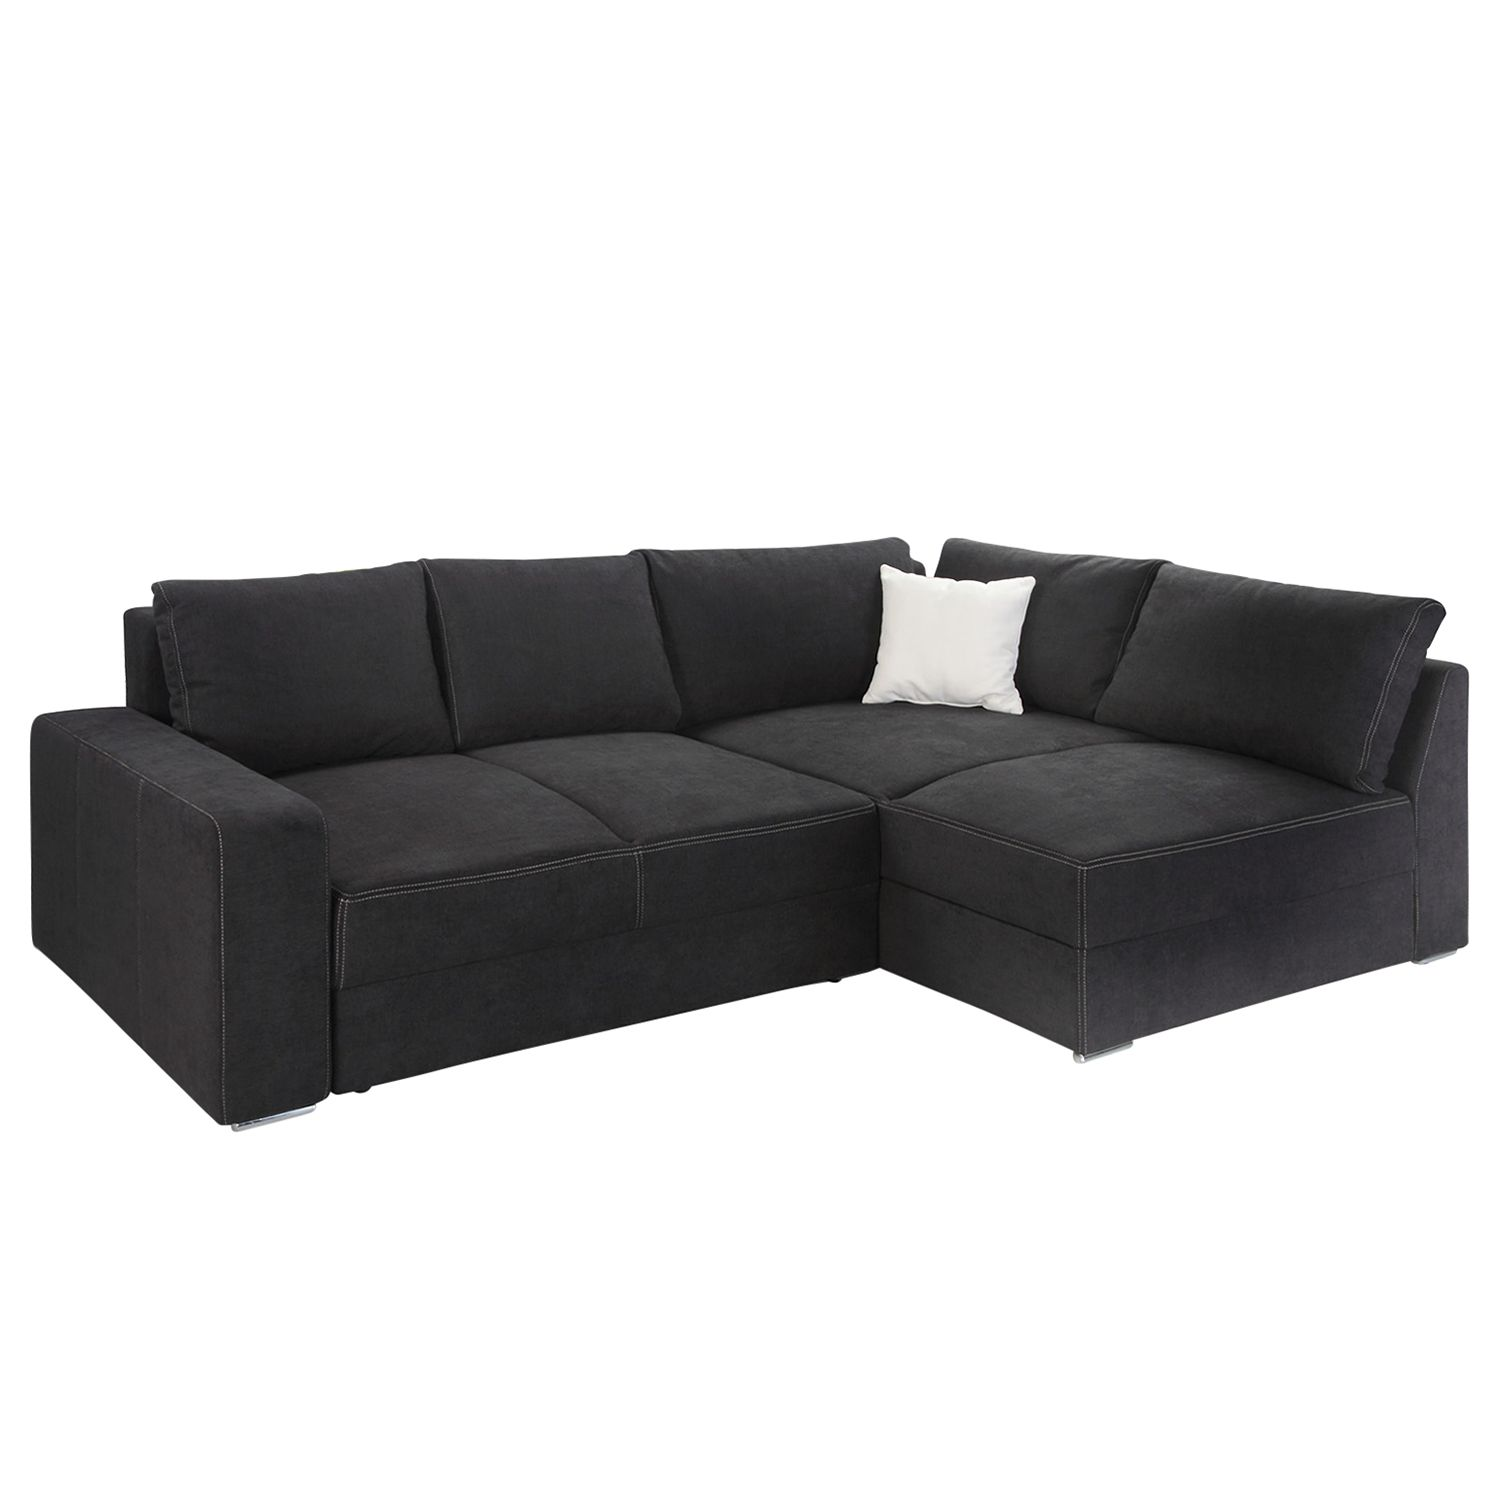 ecksofa mit schlaffunktion f r kleine r ume. Black Bedroom Furniture Sets. Home Design Ideas